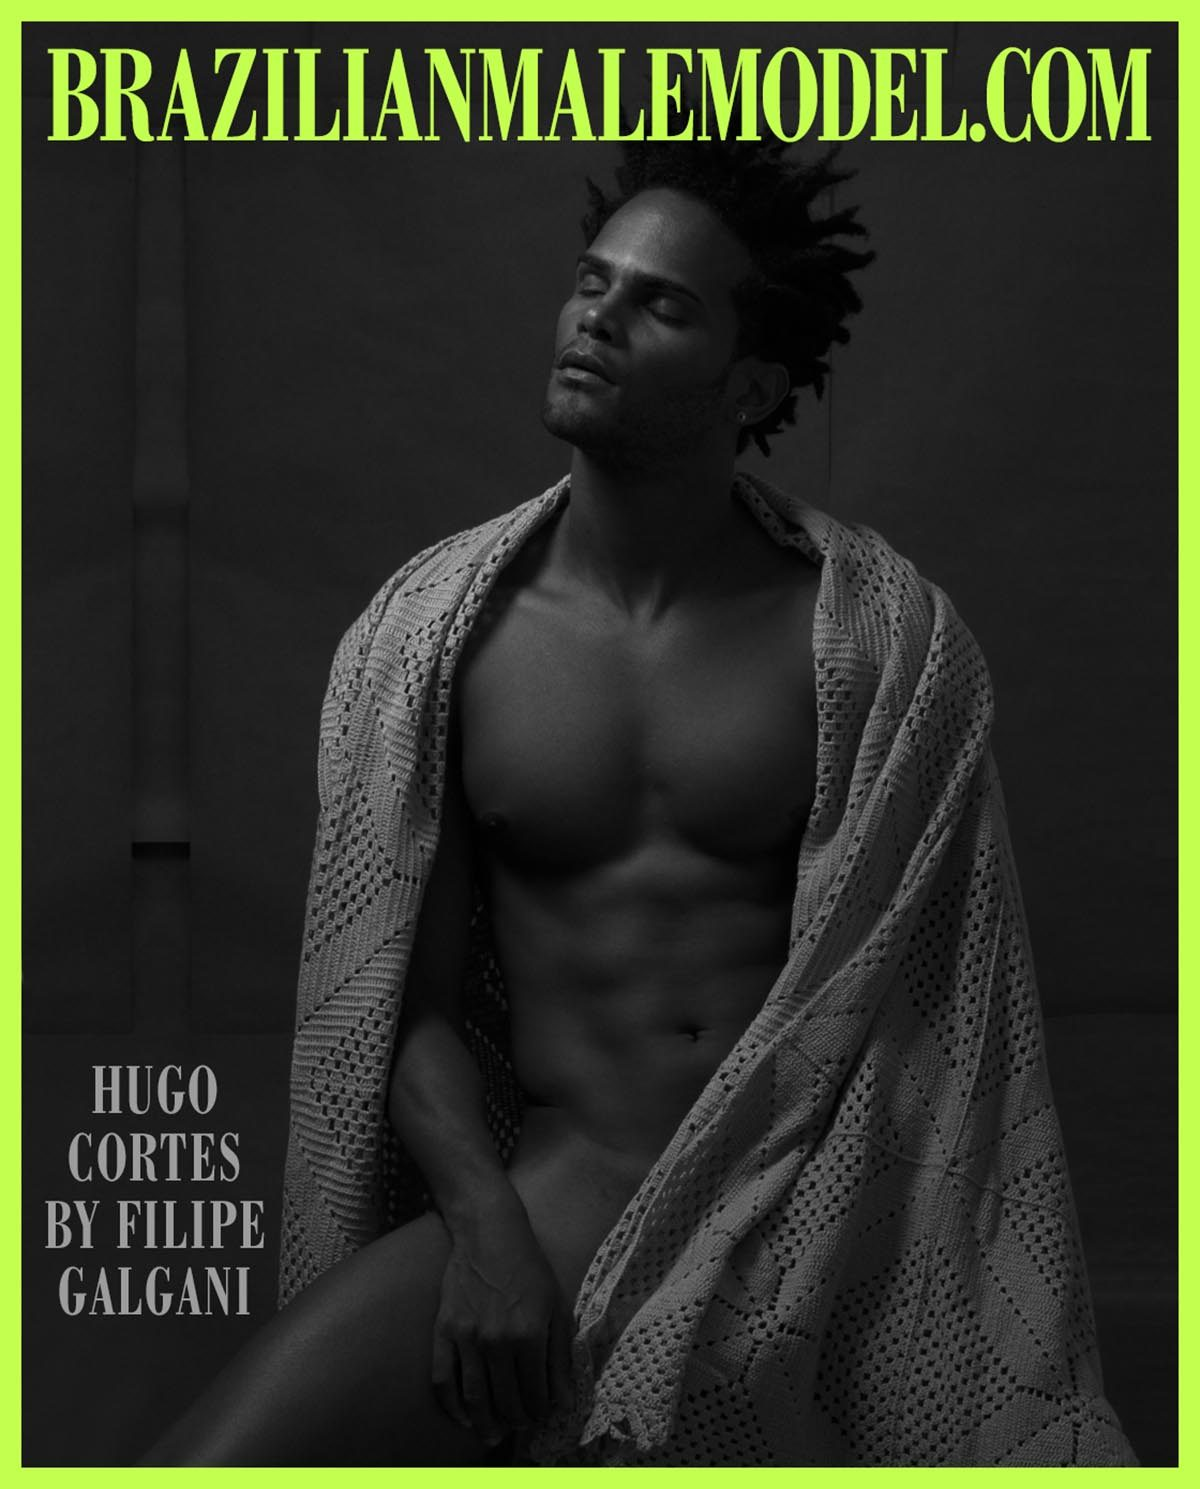 Hugo Cortes by Filipe Galgani